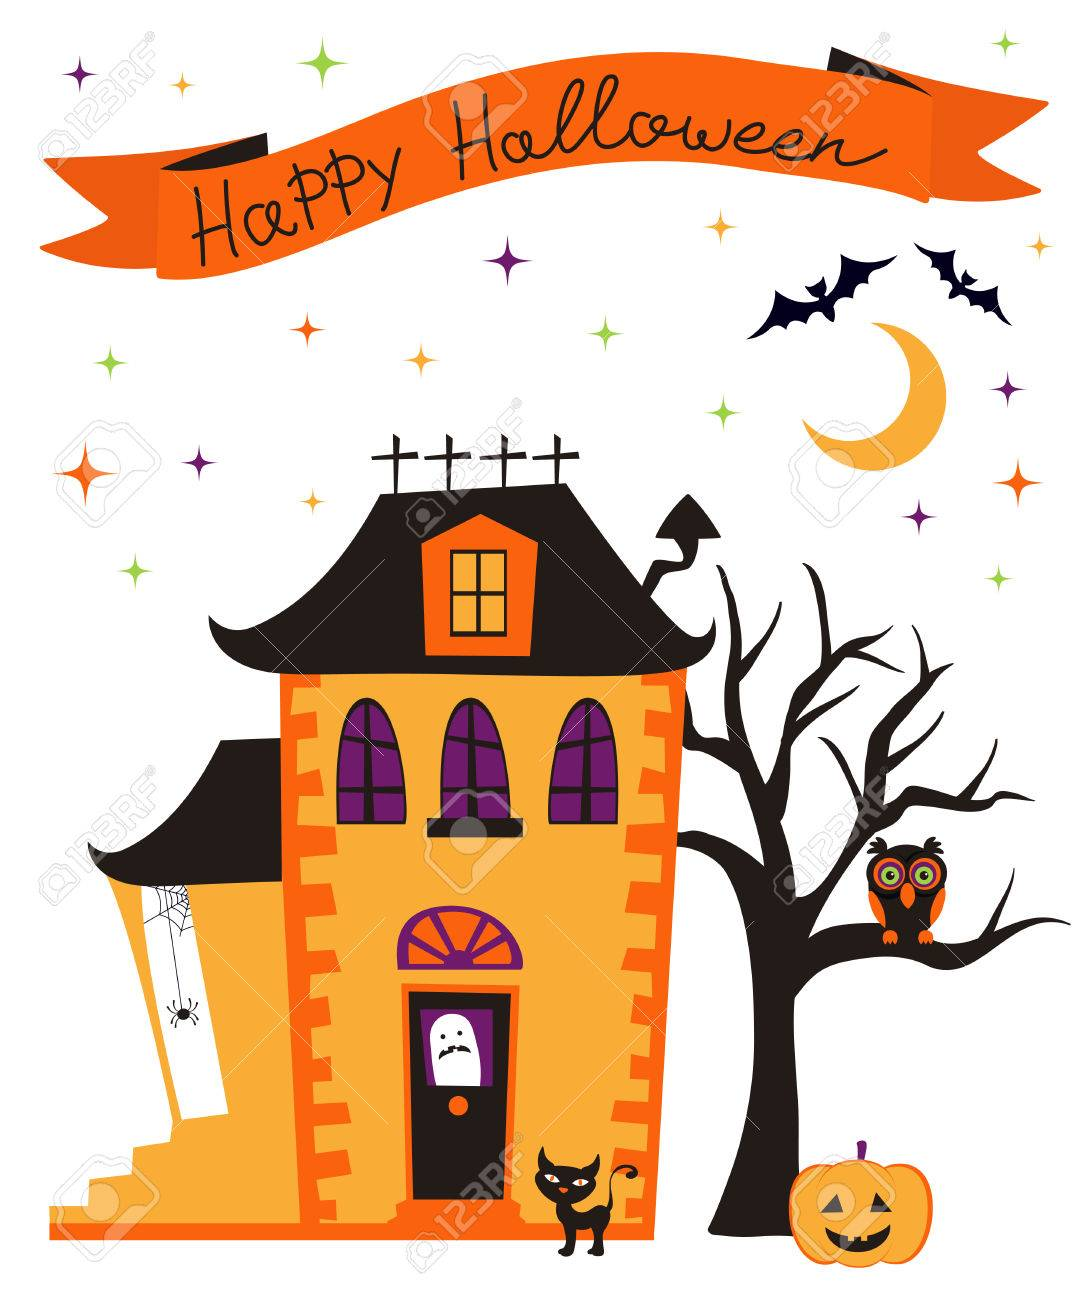 Happy Halloween Card With Haunted House Royalty Free Cliparts